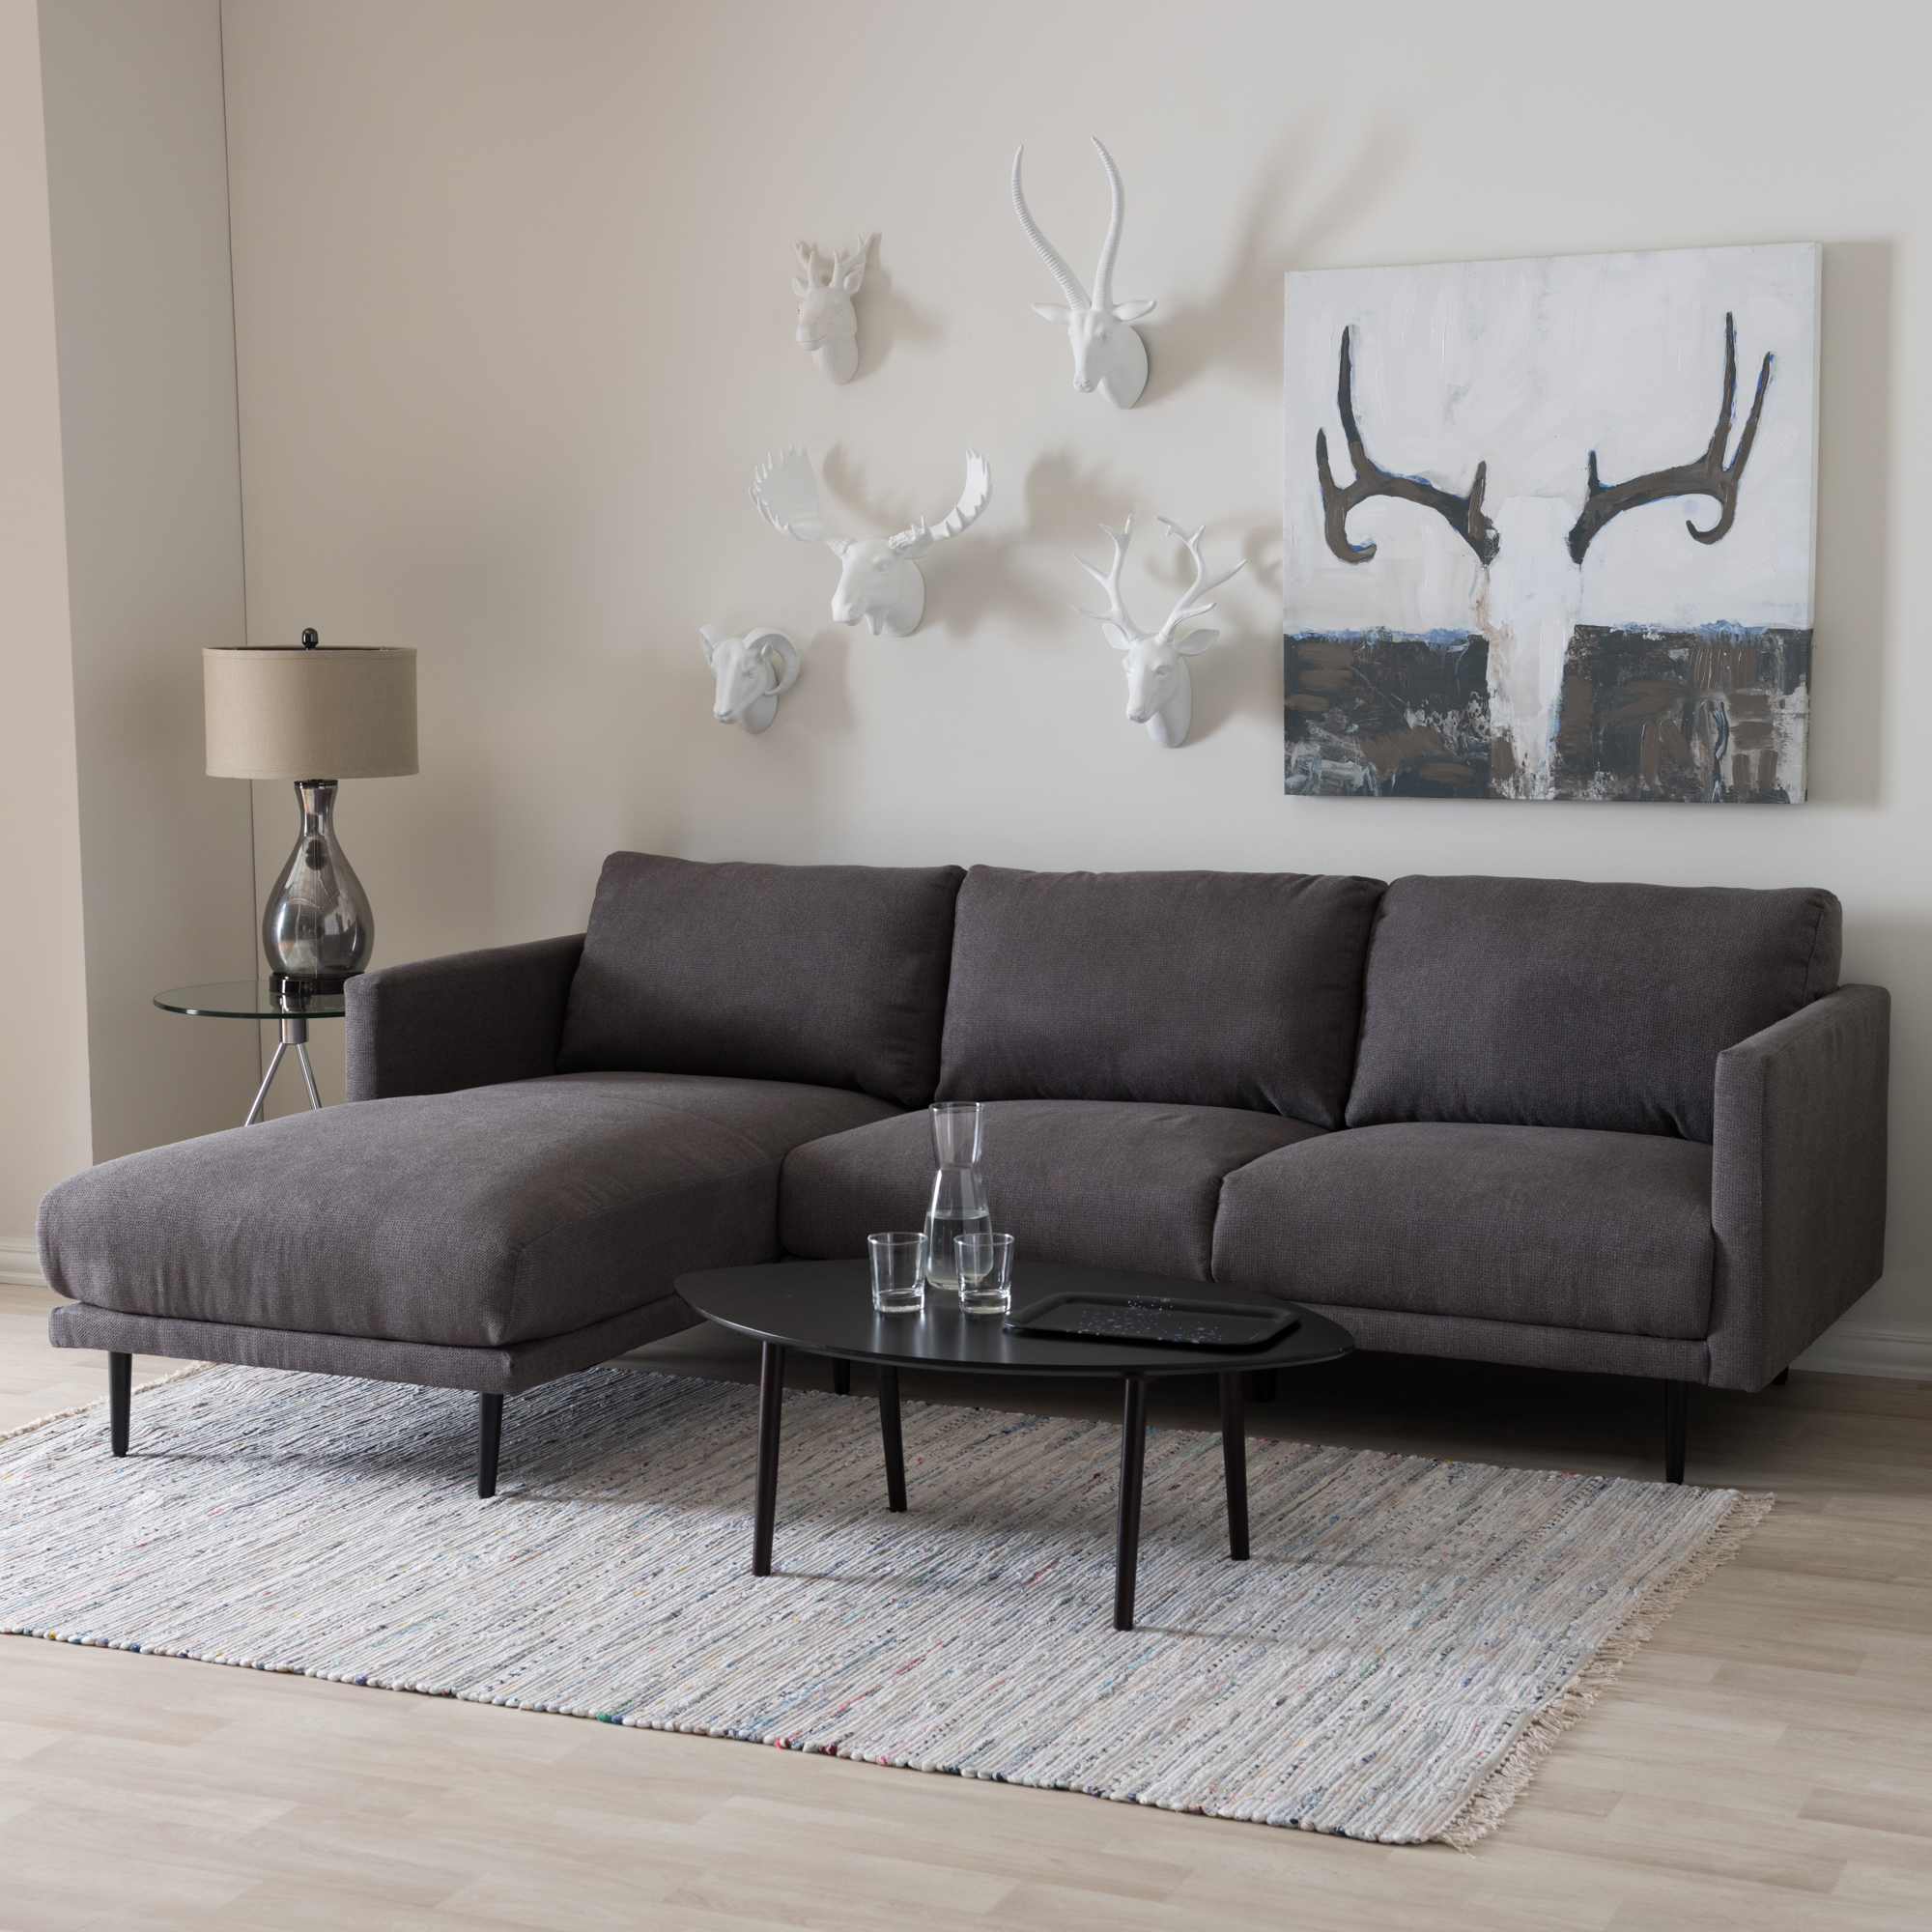 ... Baxton Studio Riley Retro Mid-Century Modern Grey Fabric Upholstered Left Facing Chaise Sectional Sofa ... : left chaise sectional - Sectionals, Sofas & Couches